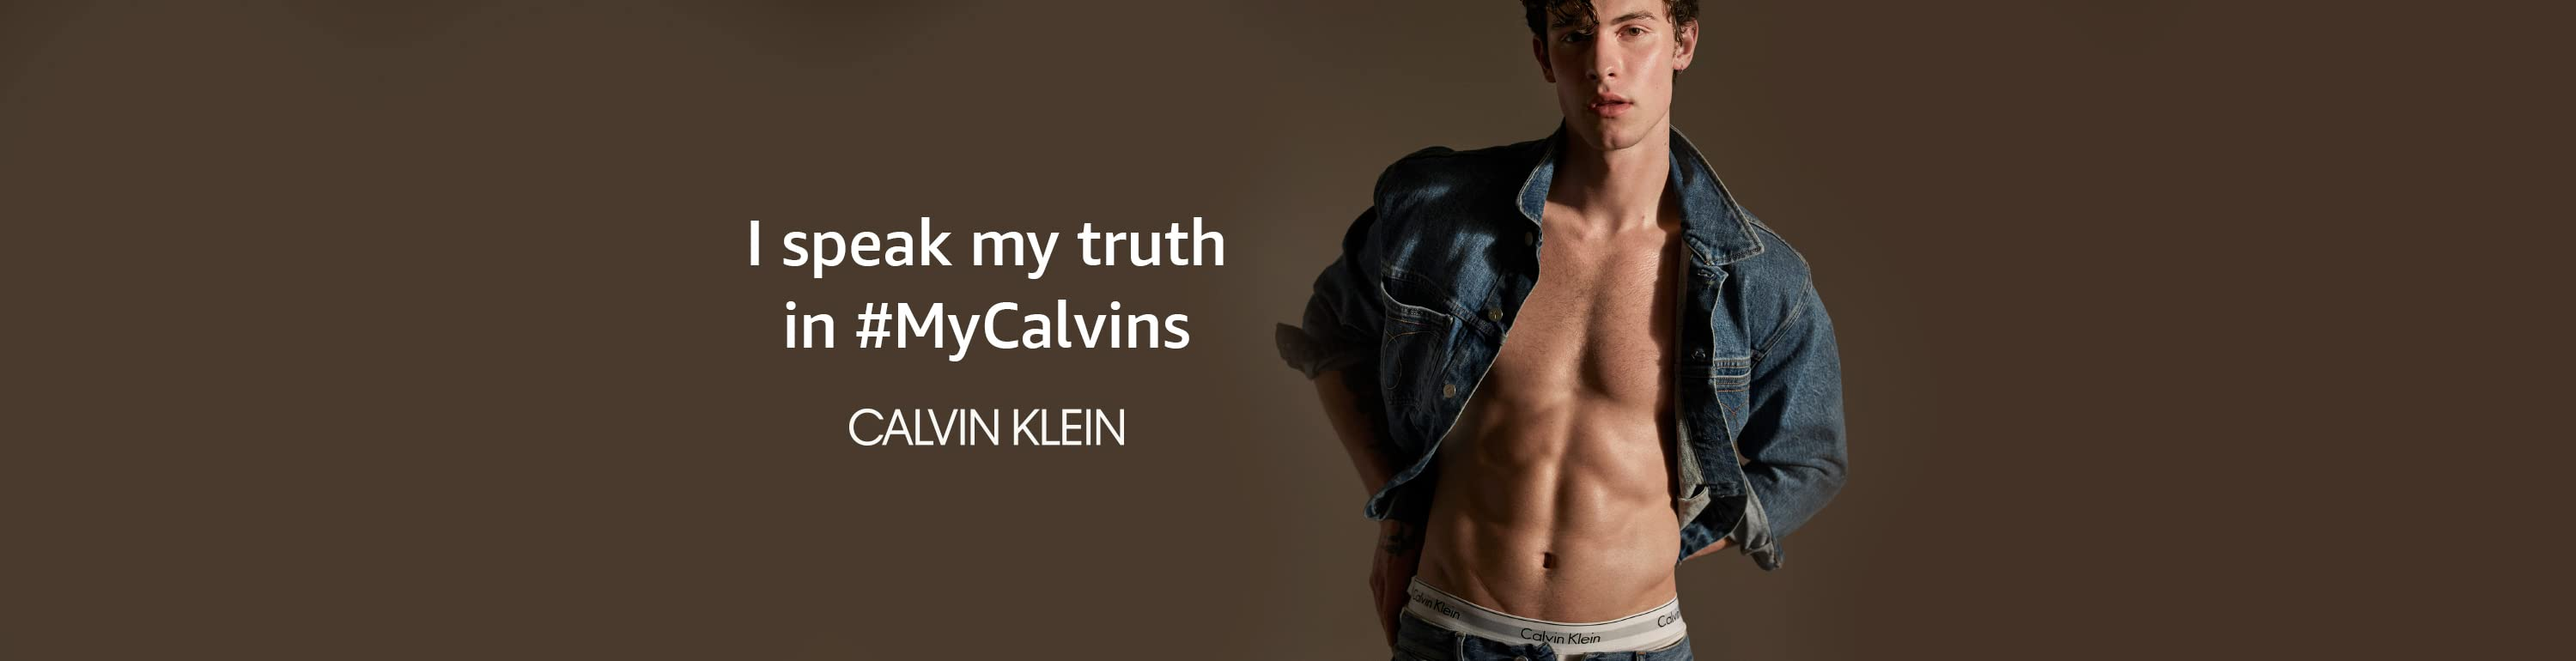 I speak my truth in #MyCalvins